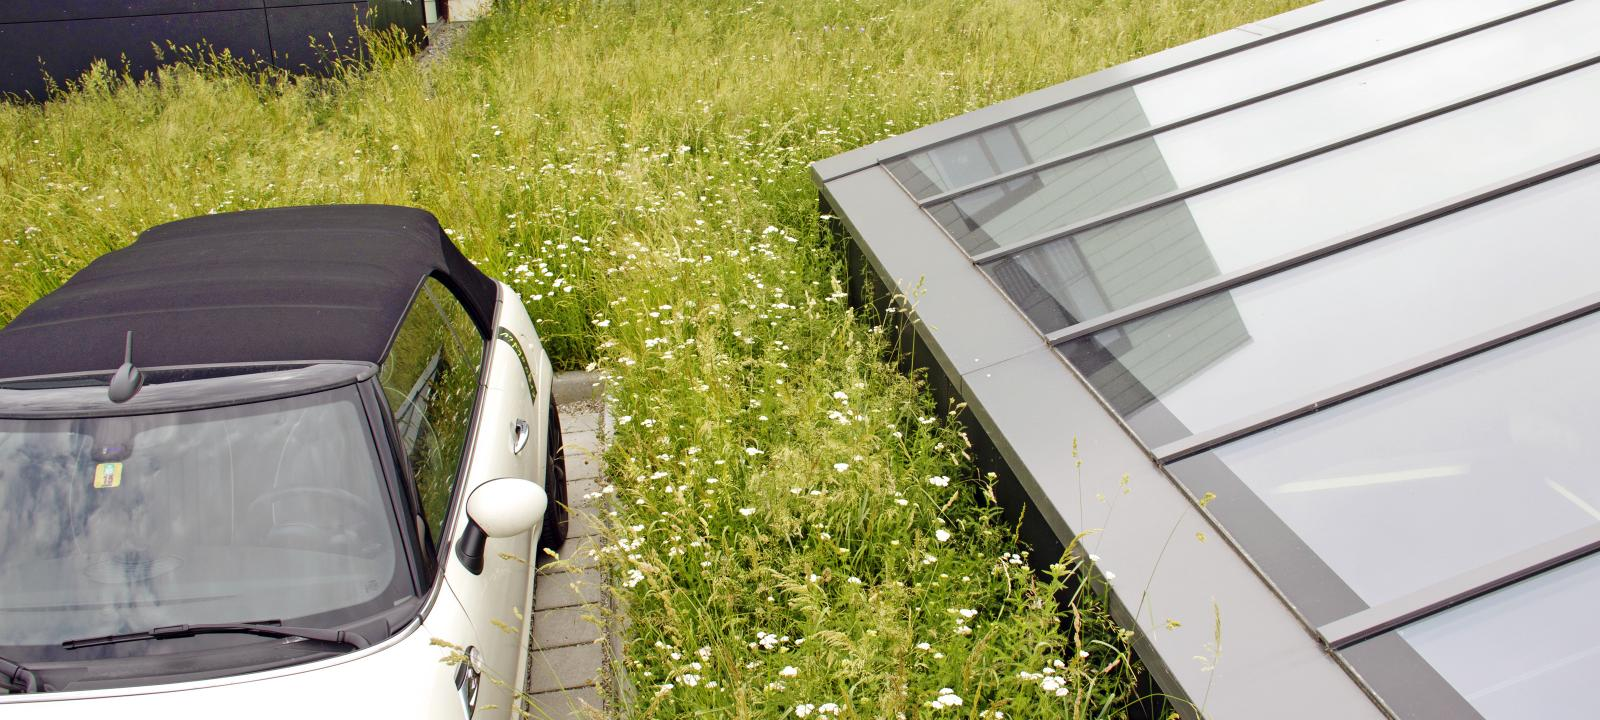 Car on a green roof surrounded by a meadow